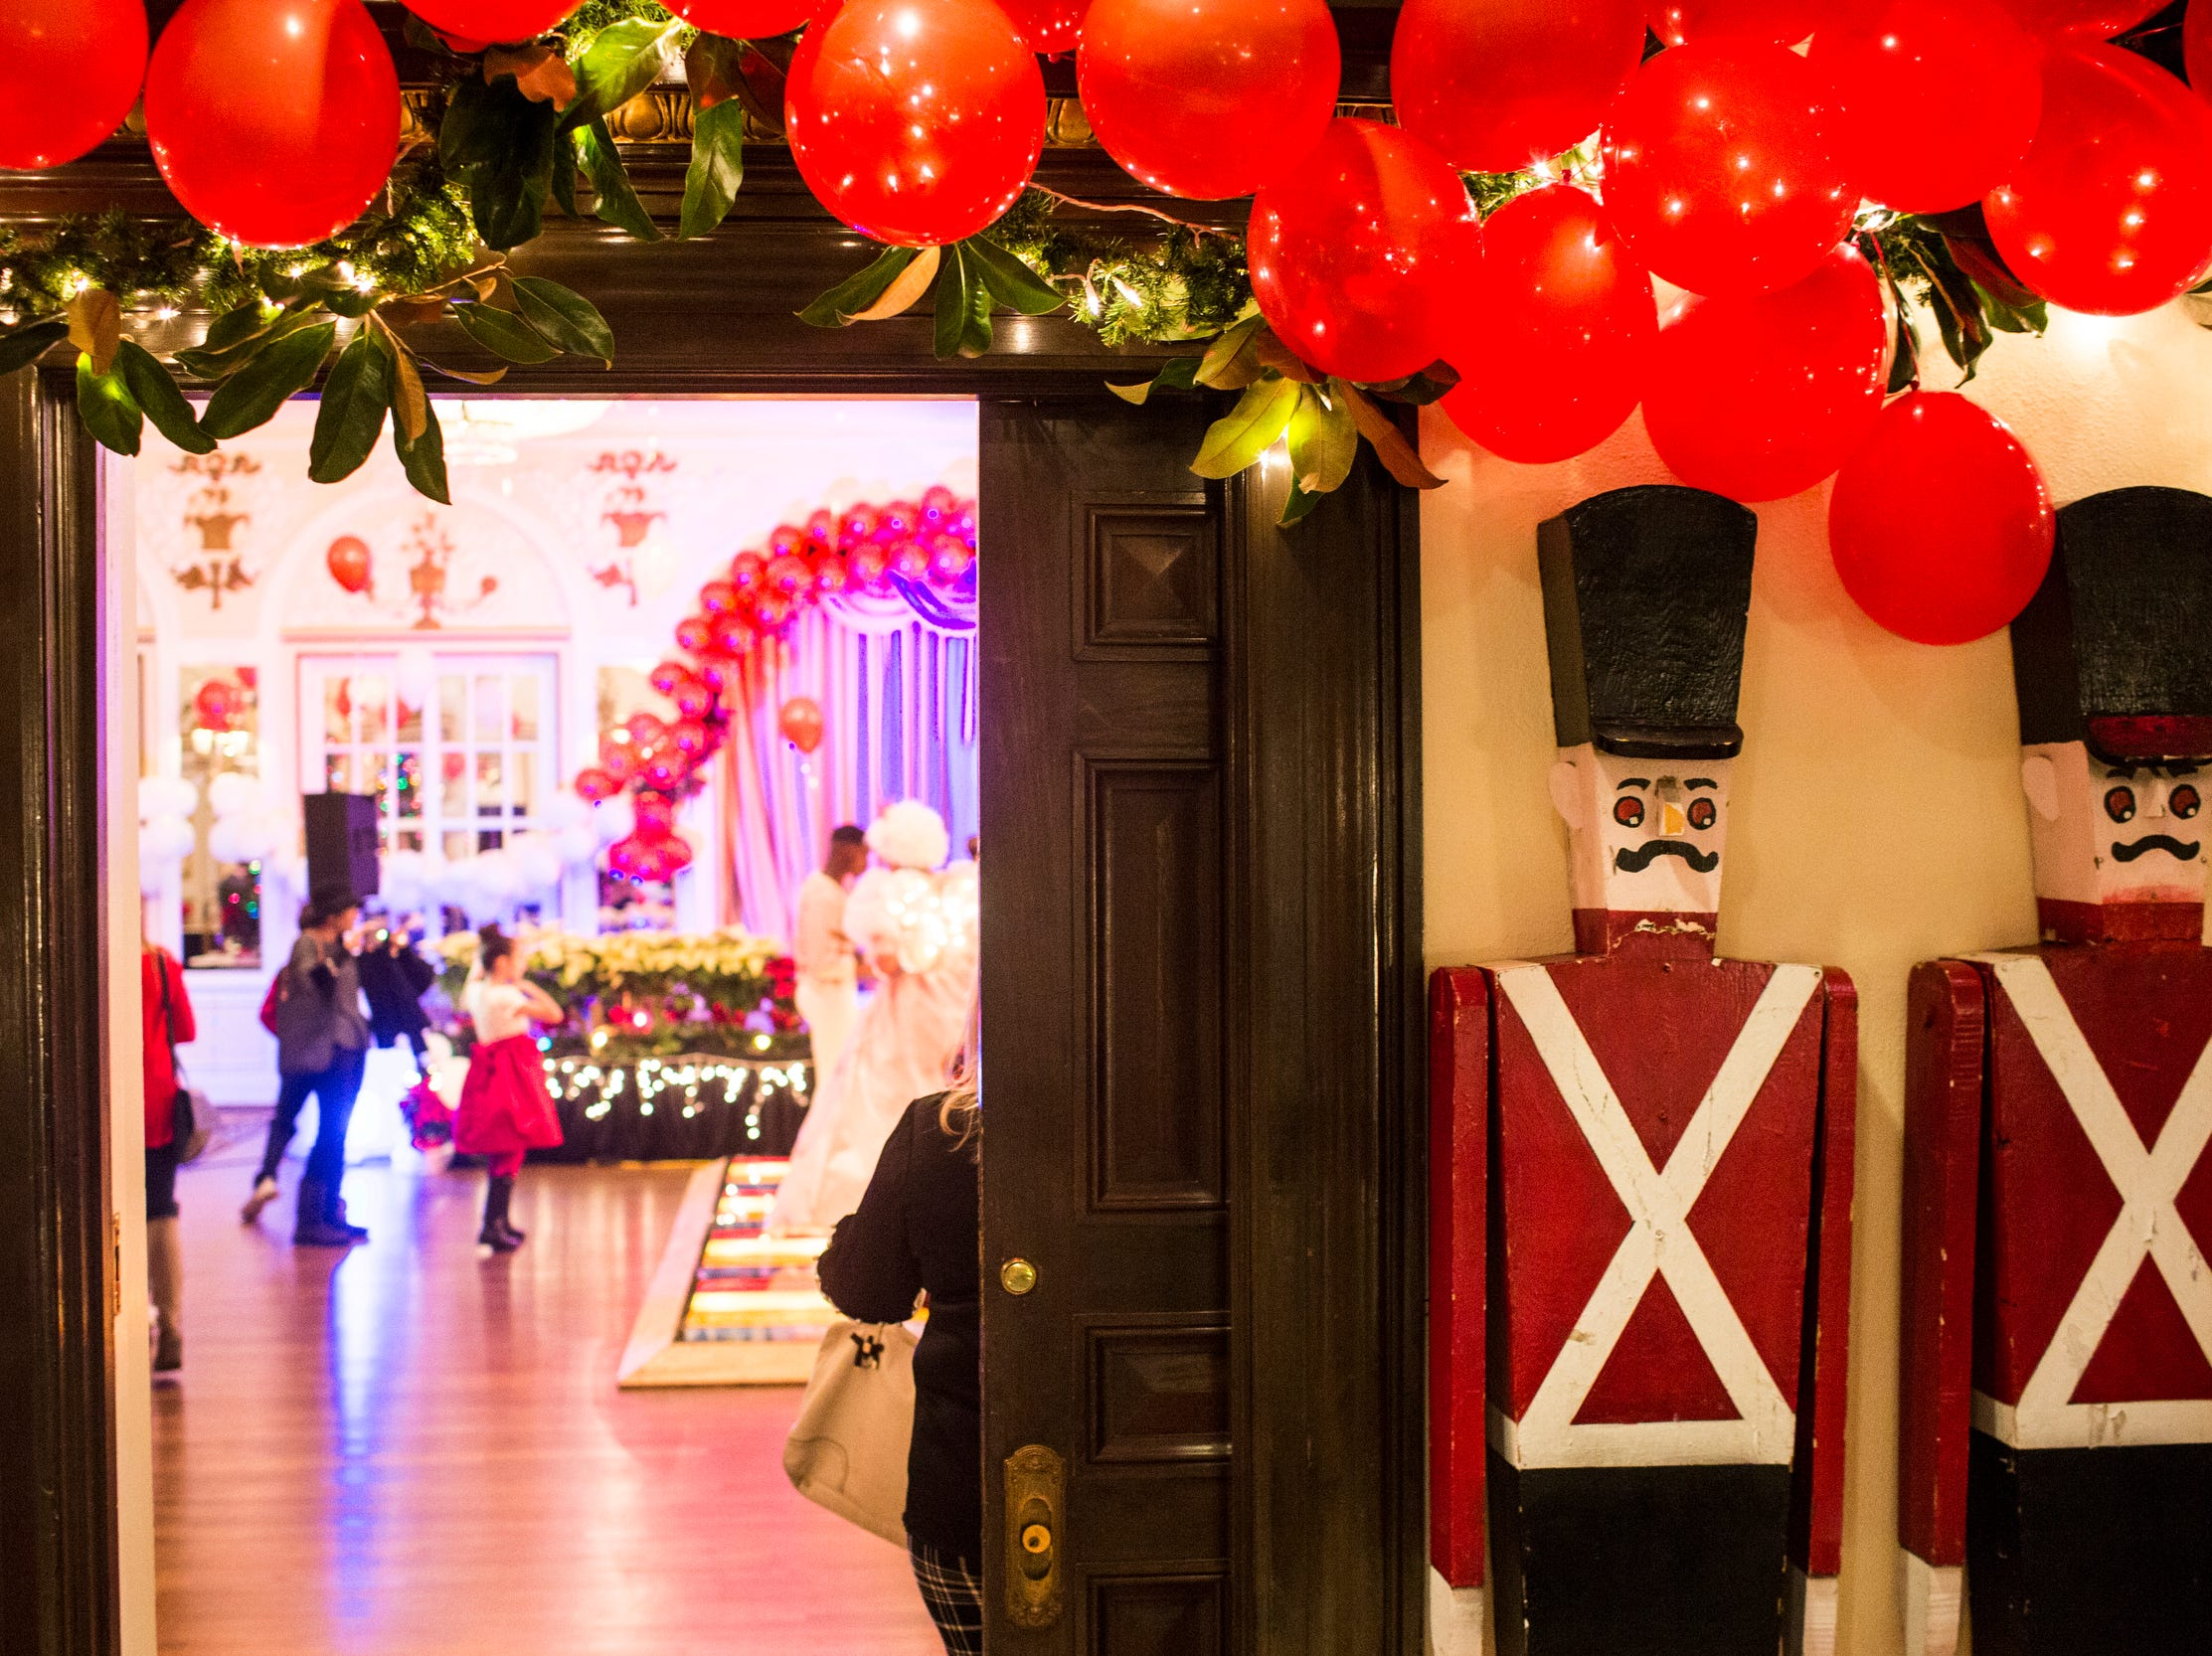 December 02 2018 - Nutcrackers are seen at the entrance to the Memphis Jingle Bell Ball Holiday Cookie Party inside of the Continental Ballroom at the Peabody Hotel on Sunday. This was the 30th anniversary of the Jingle Bell Ball.